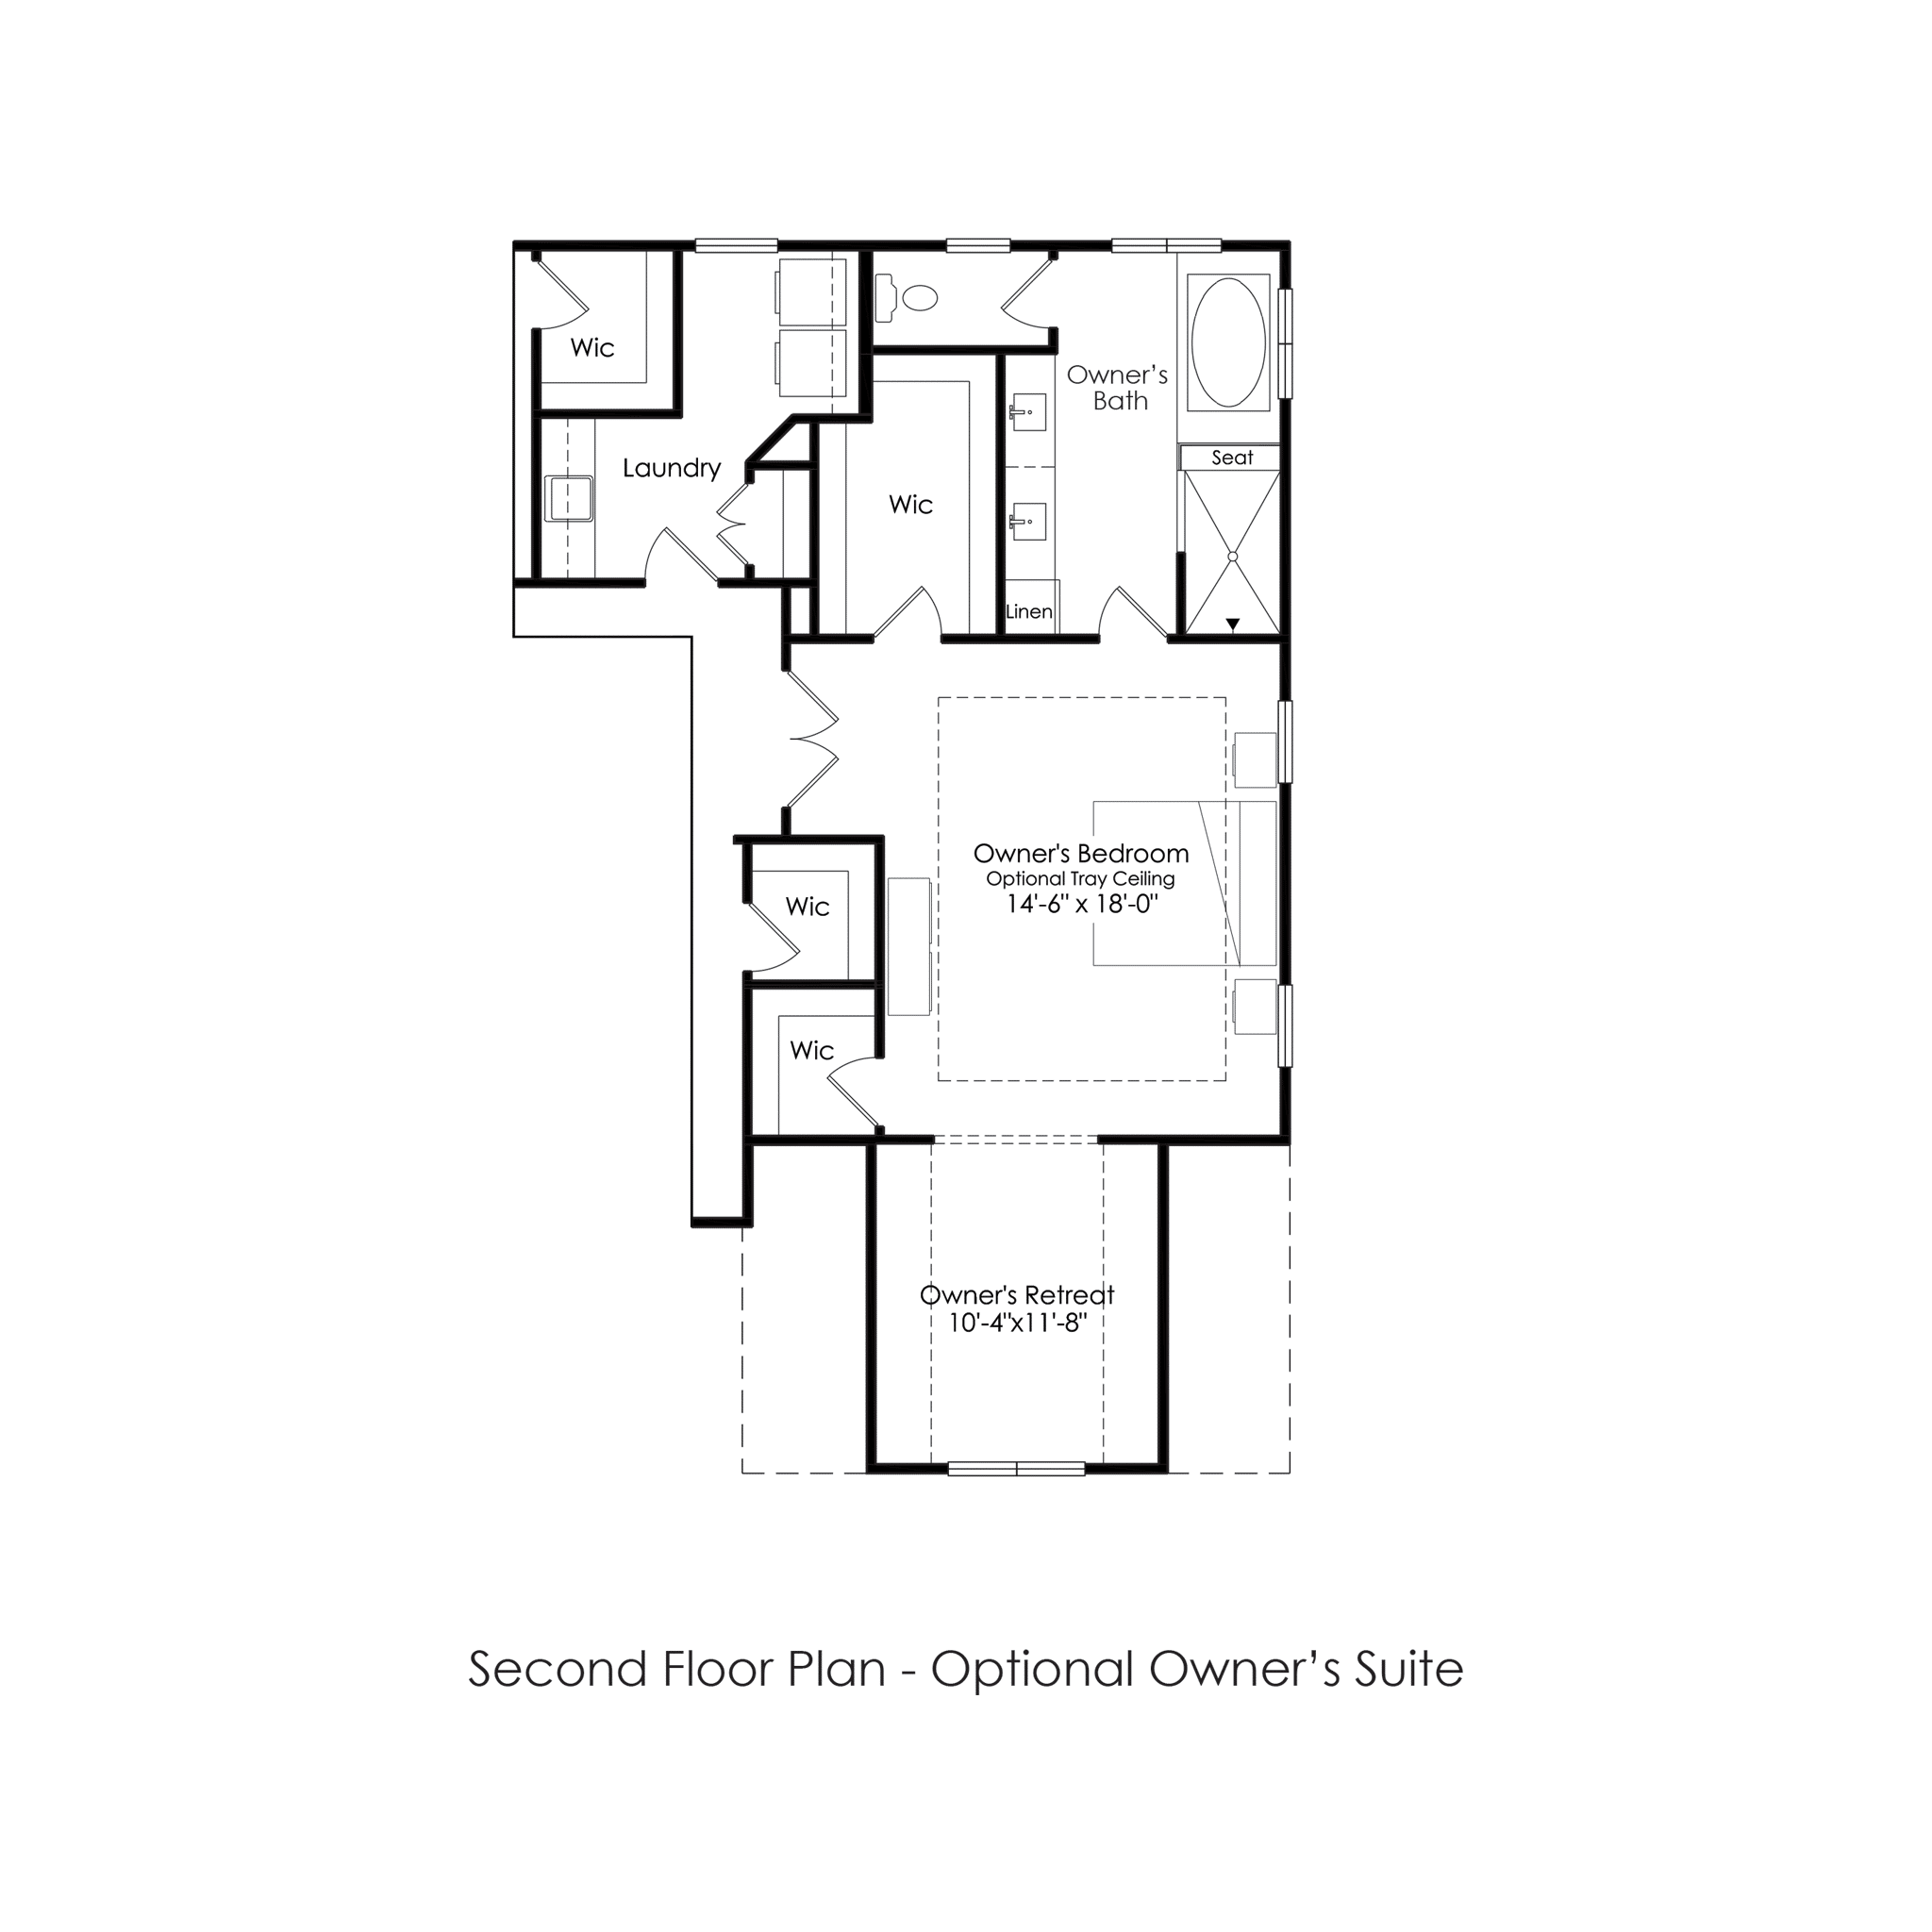 Second Floor – Optional Owners Suite